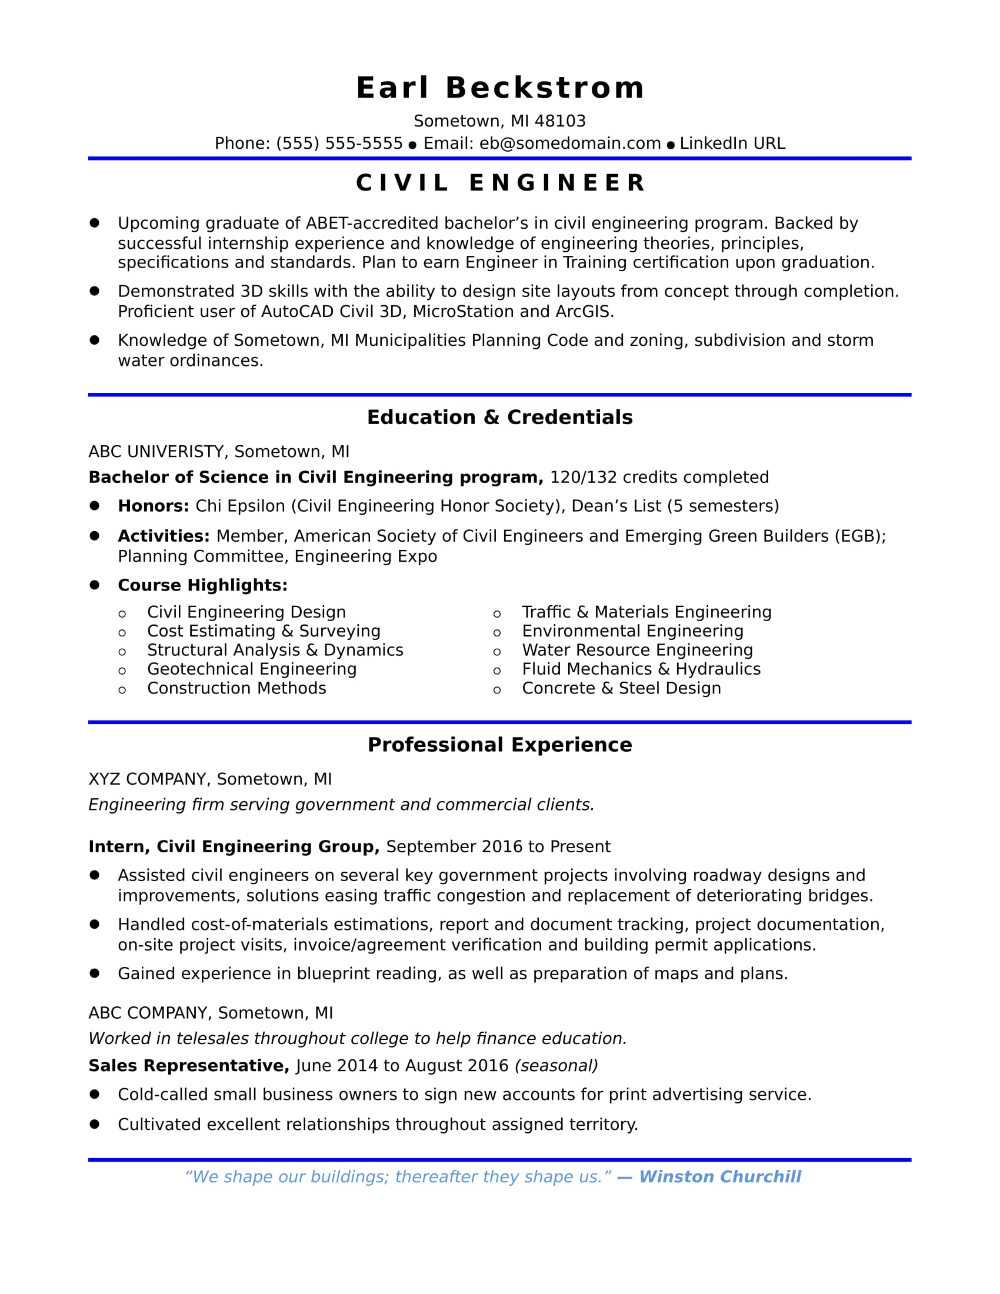 If You Re Just Starting Your Civil Engineering Career Check Out This Entry Level Civil Engineer Resume Sample Engineering Resume Civil Engineer Resume Job Resume Examples